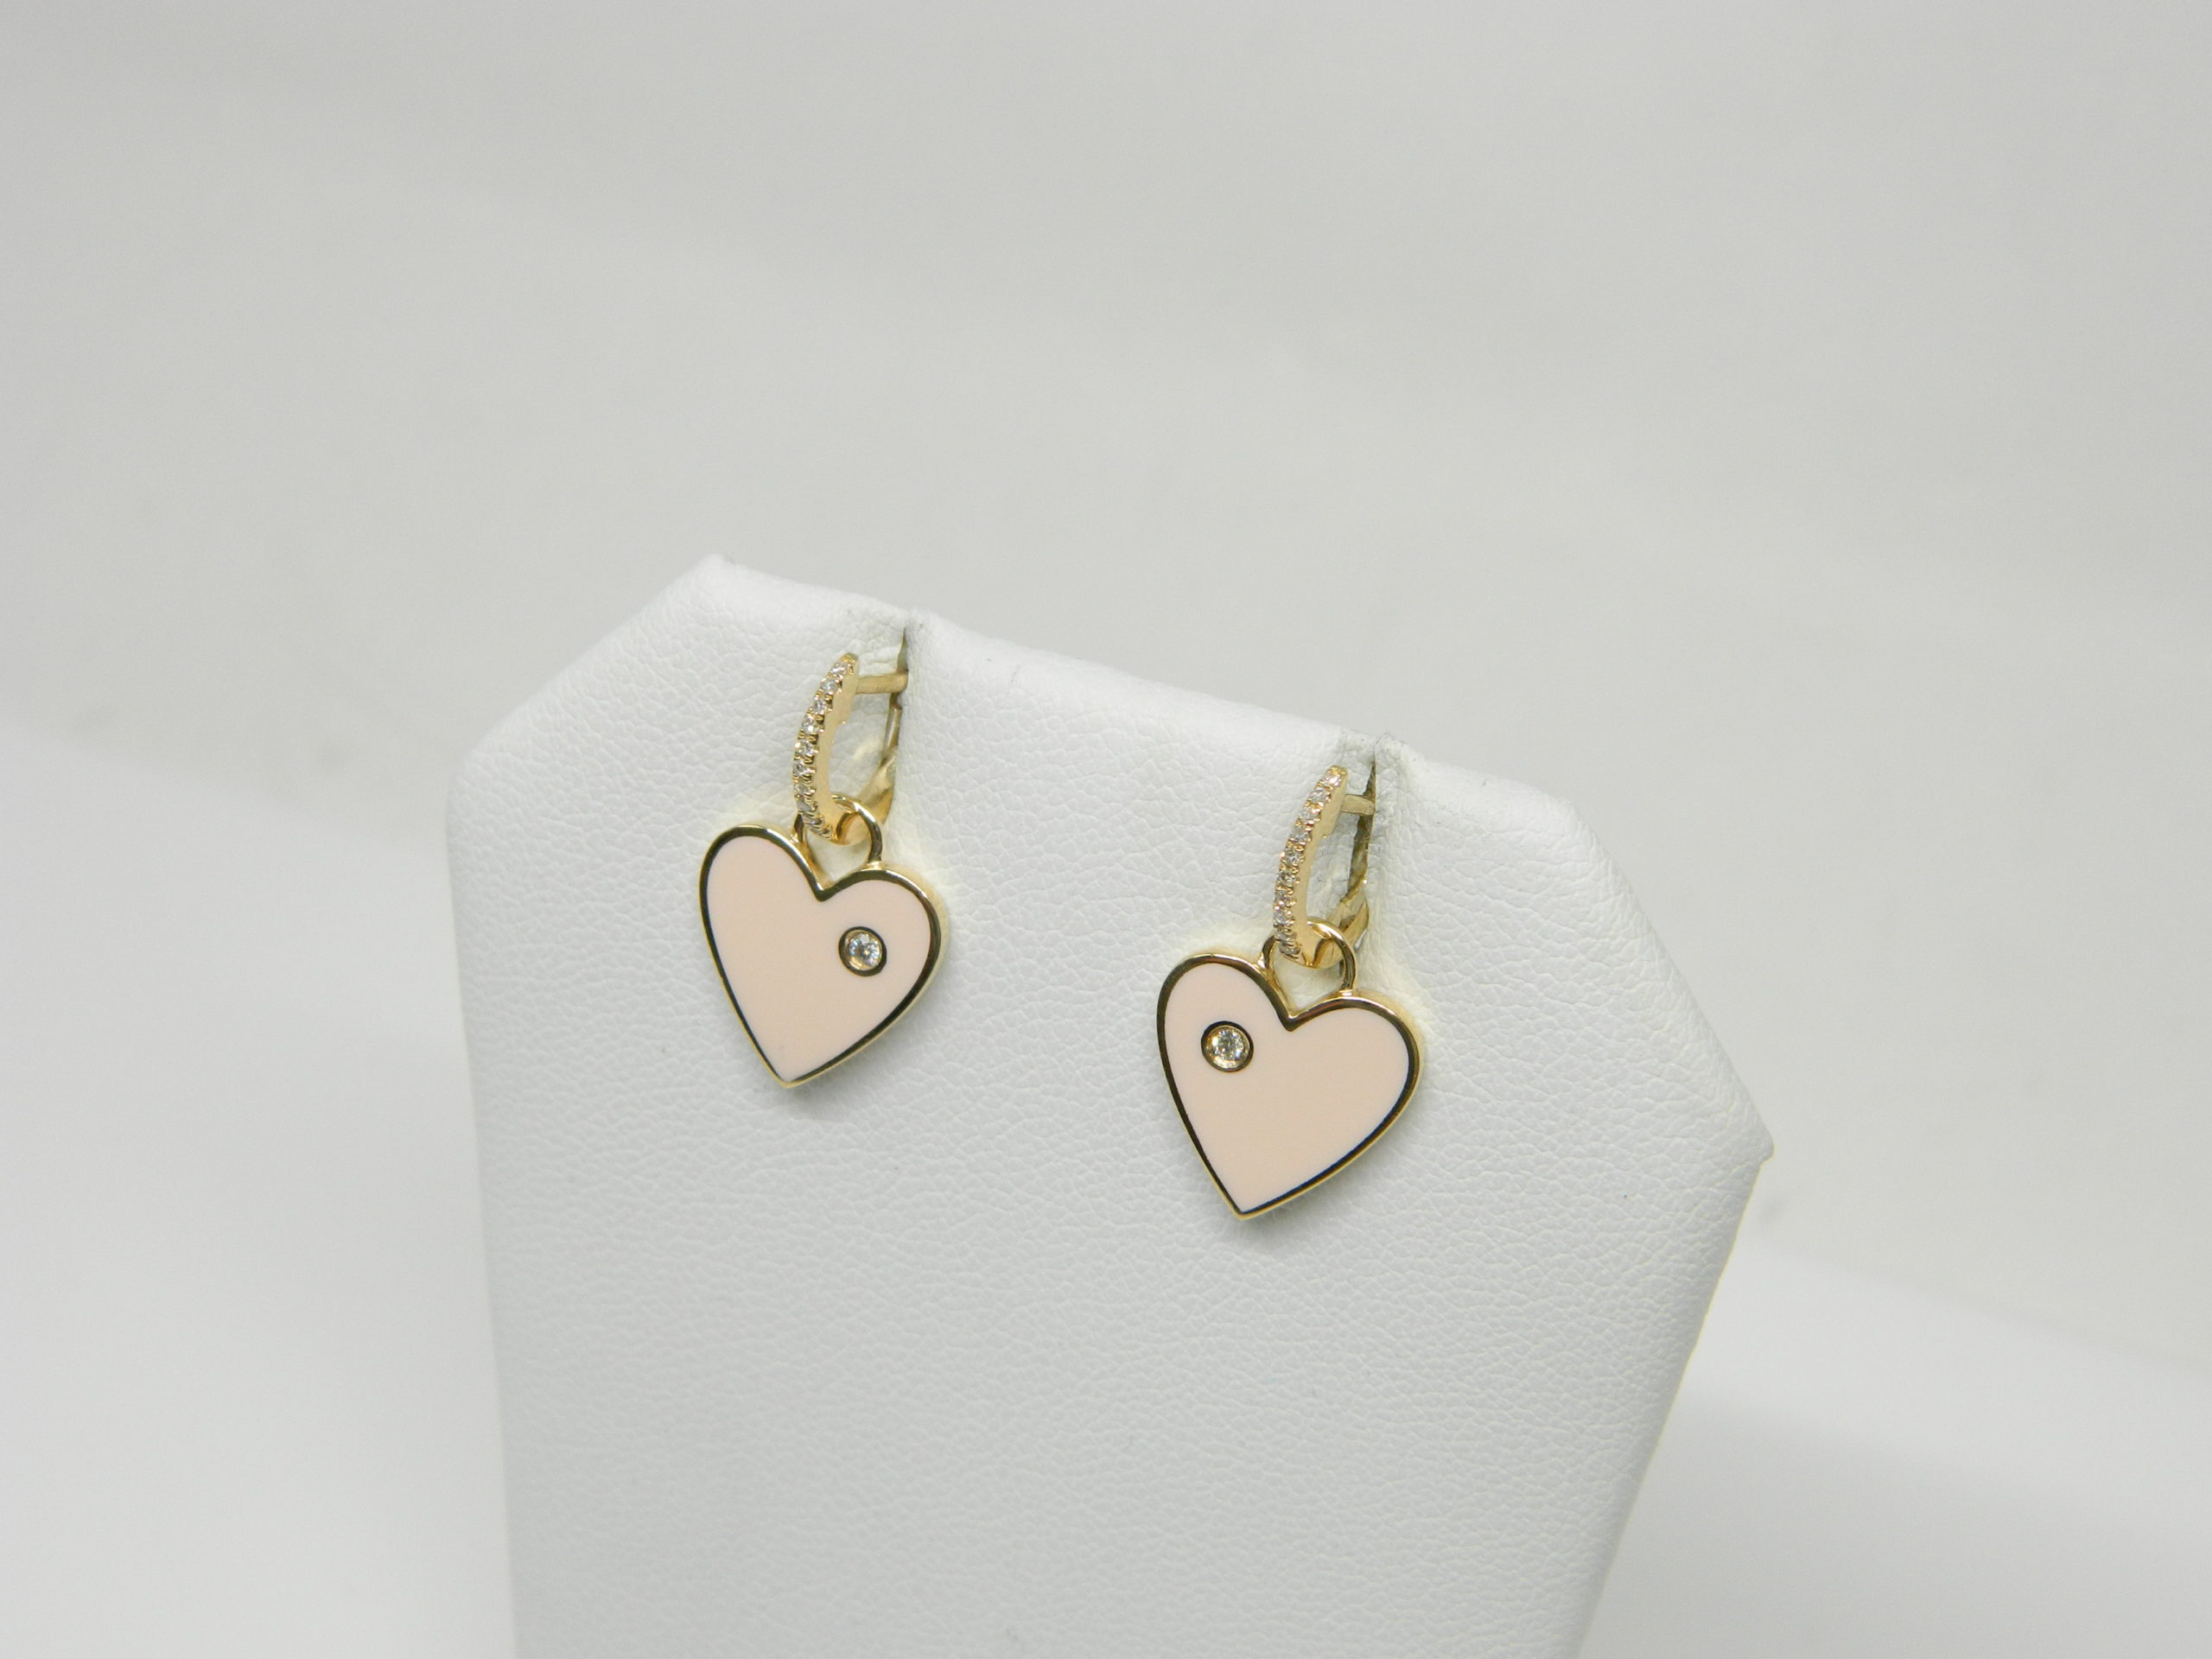 14 Karat Yellow Gold Drop Mounted Pink Heart Enamel Earrings with 22 Round Cut Diamonds weighing 0.08cts